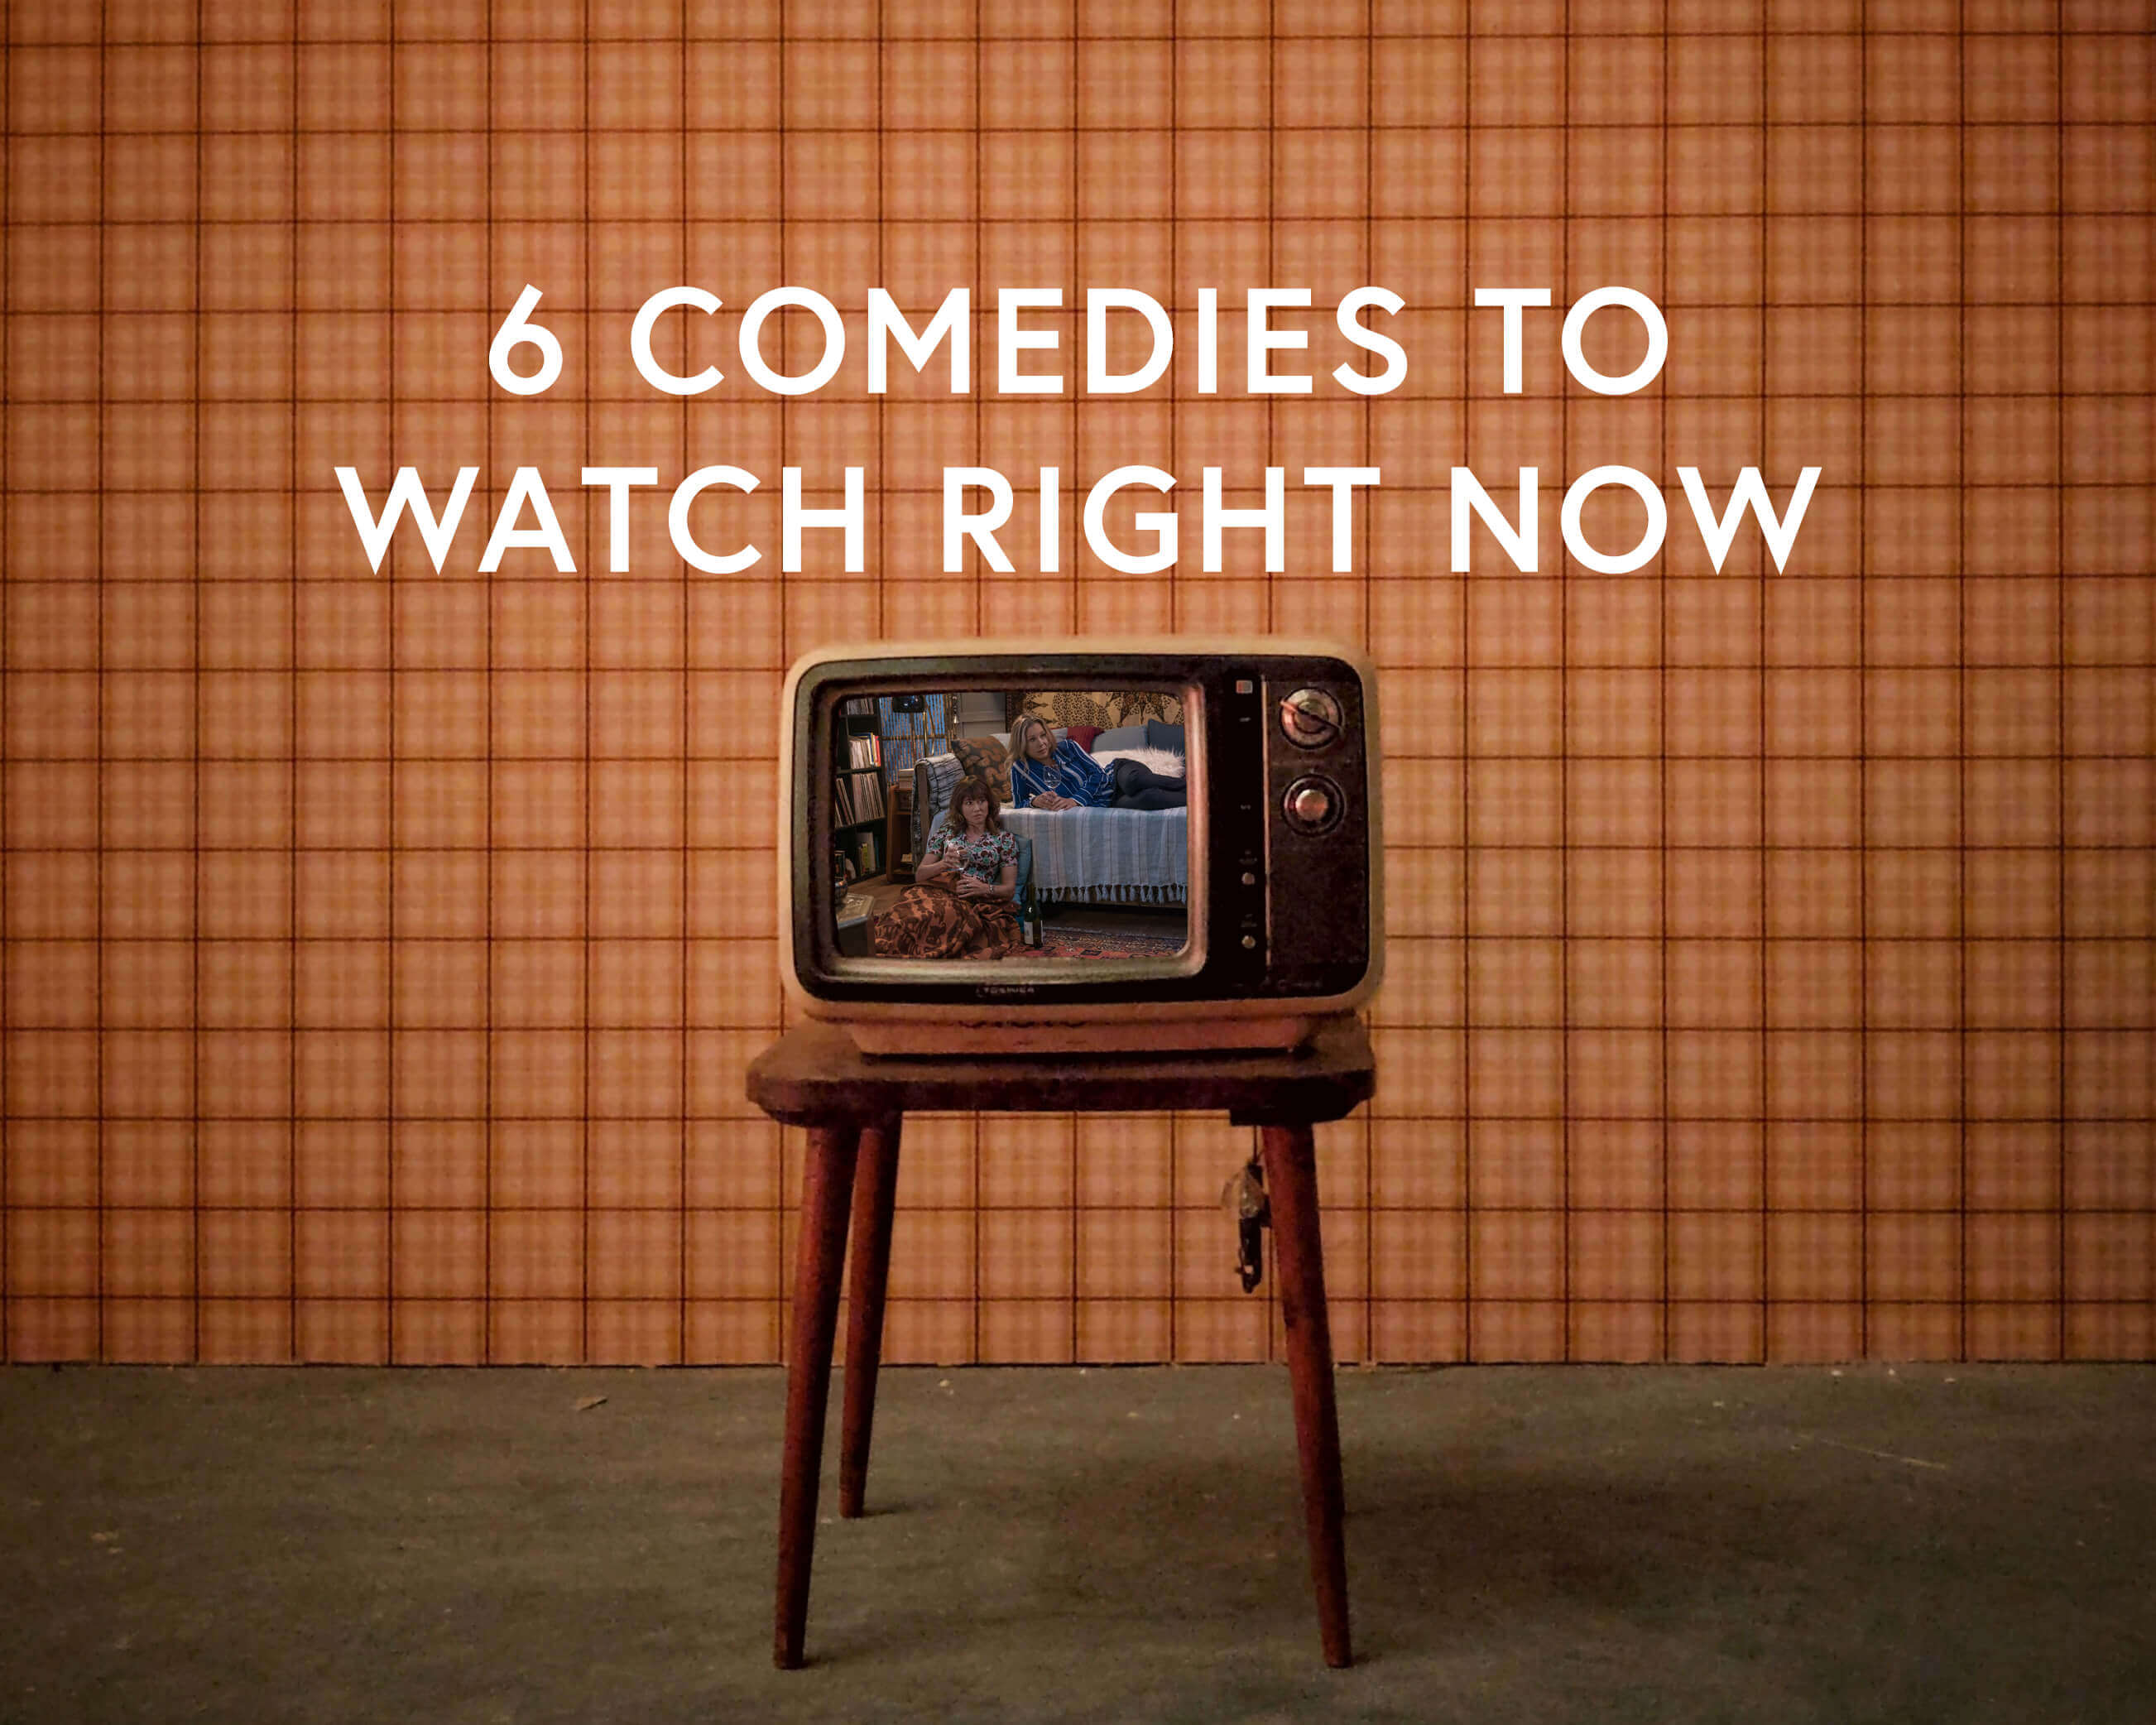 tv shows comedies to watch 2019